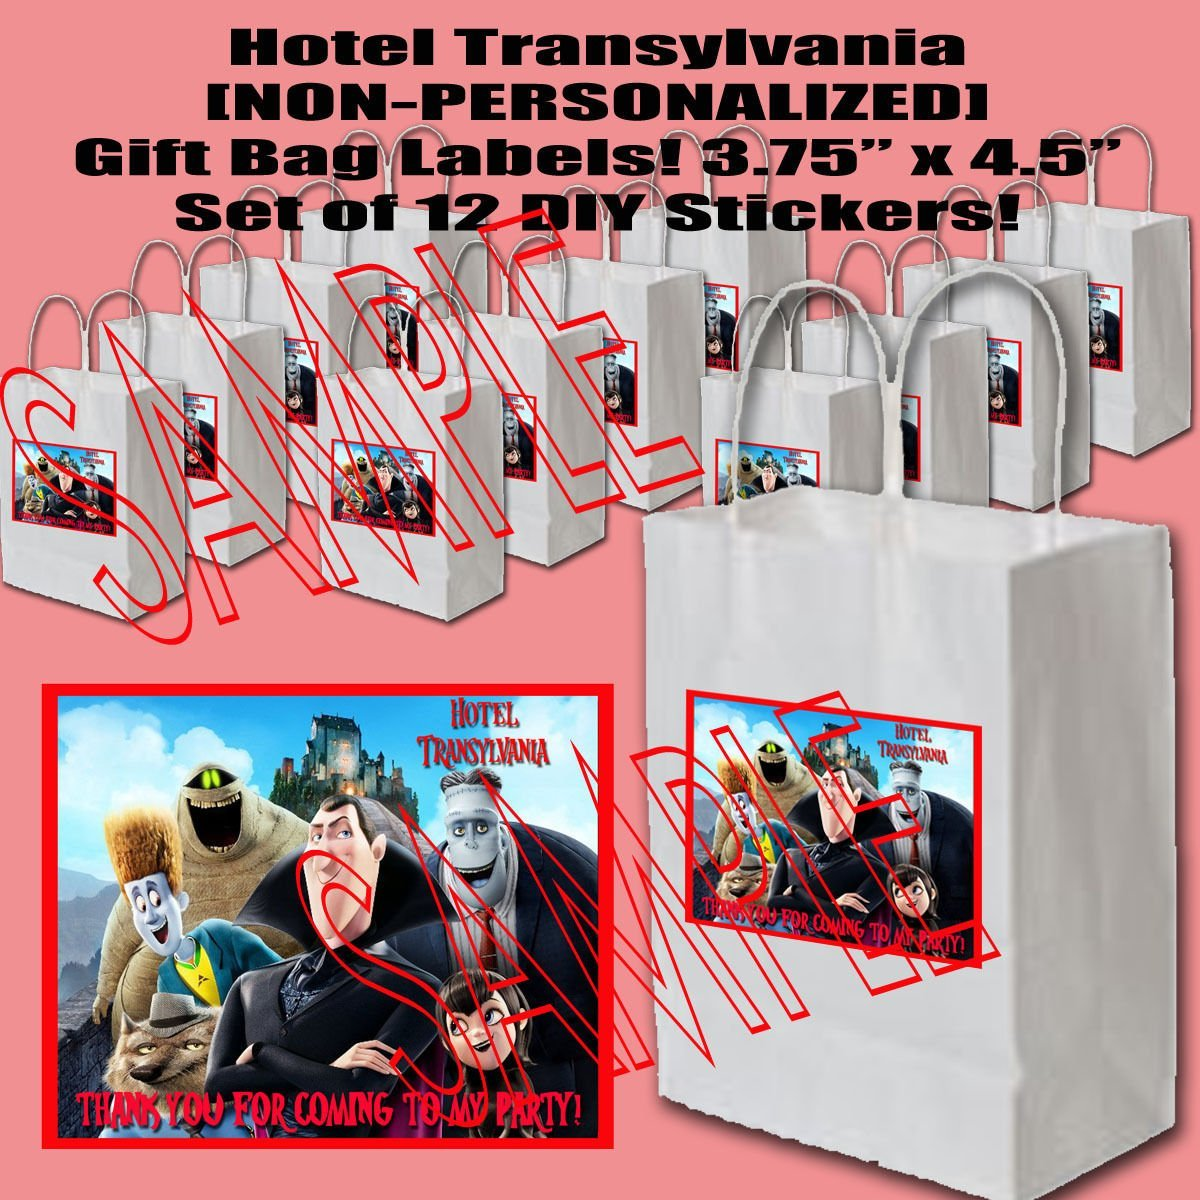 Hotel Transylvania Party Favors Supplies Decorations Gift Bag Label STICKERS ONLY 3.75'' x 4.75'' -12 pcs